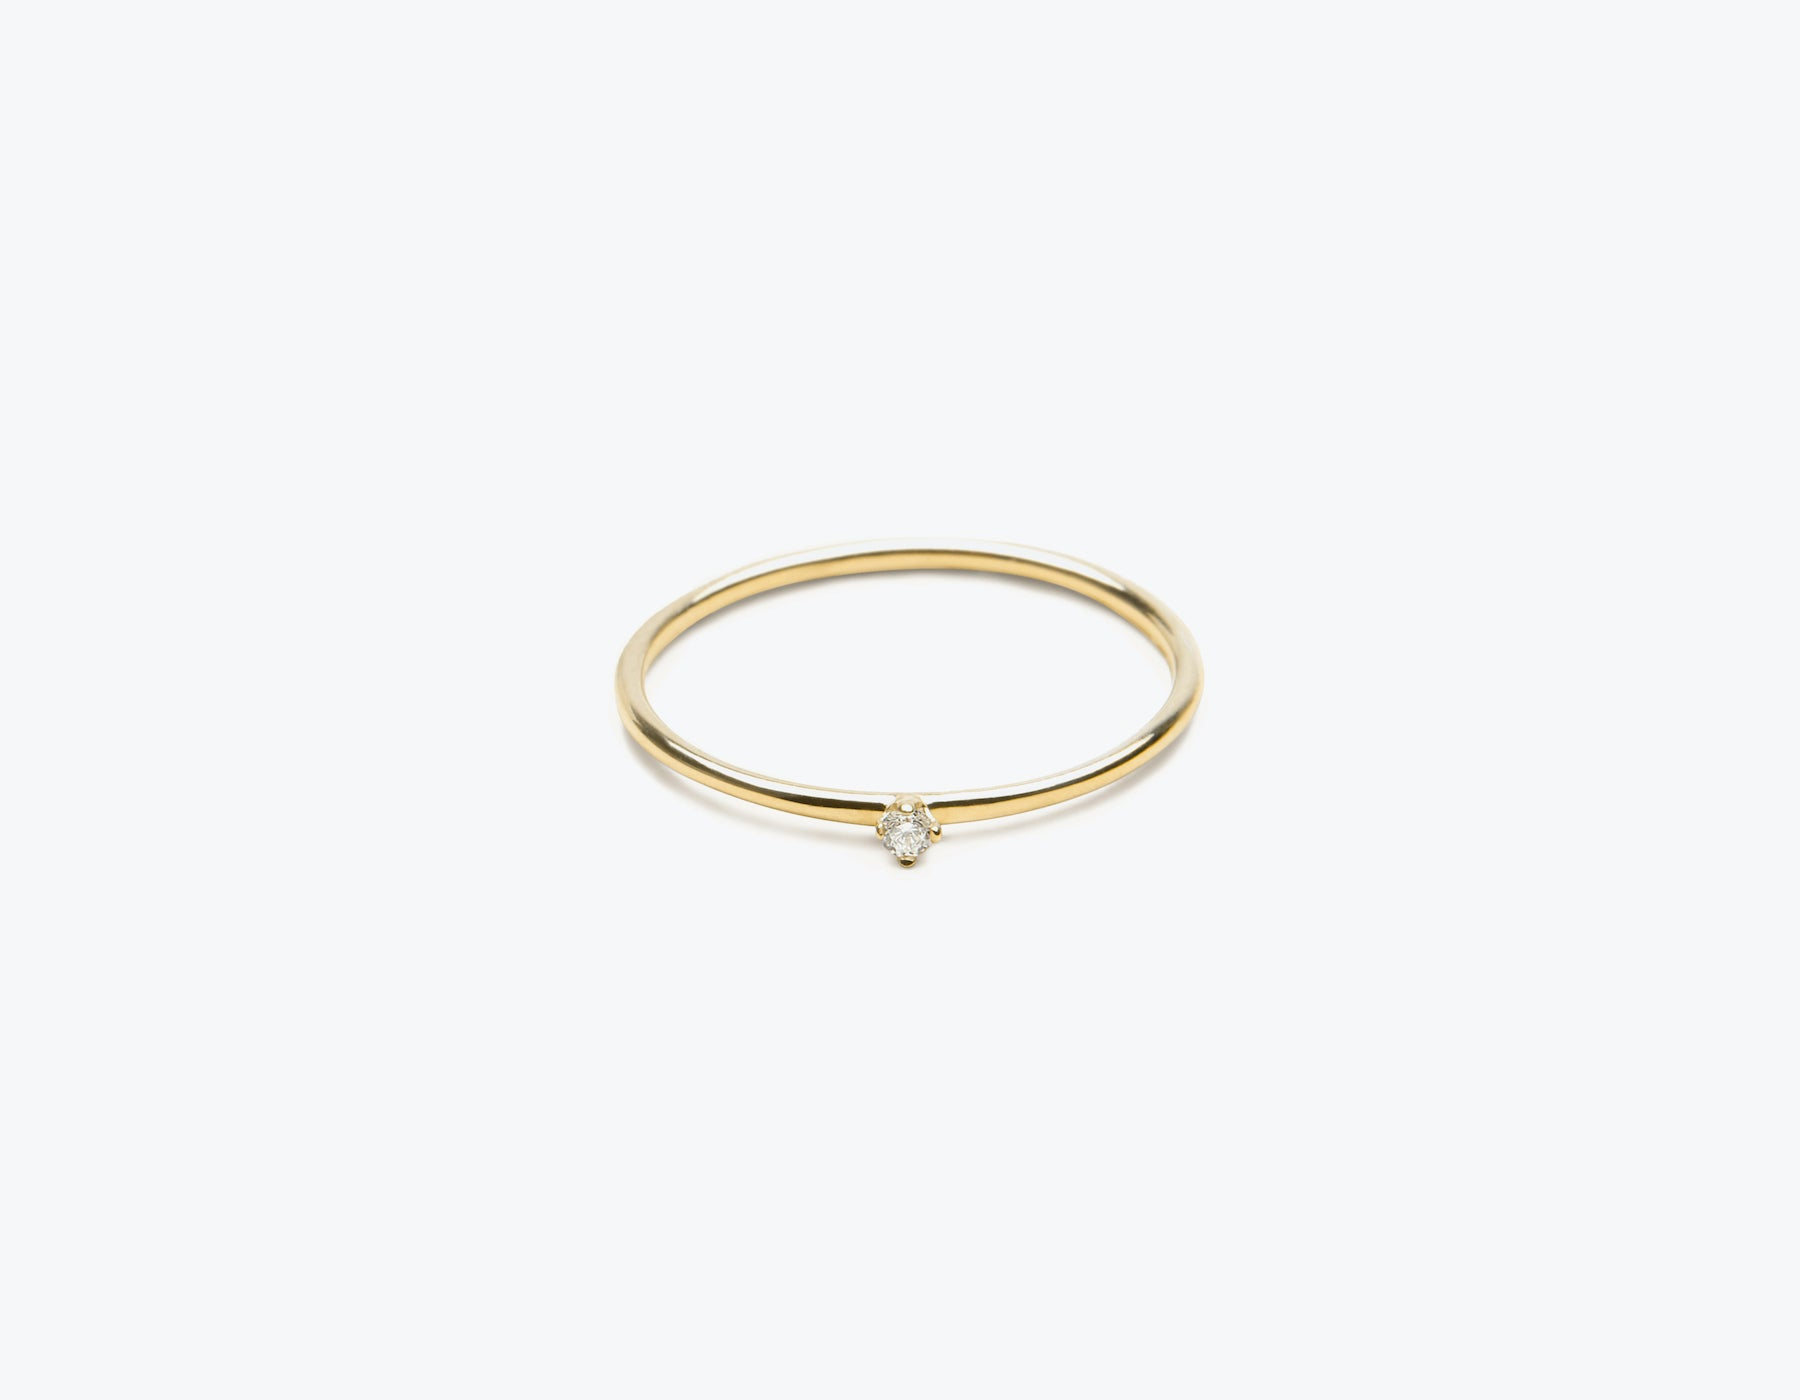 Classic minimalist 14k solid gold small Round Diamond Stacker ring by Vrai and Oro, 14K Yellow Gold